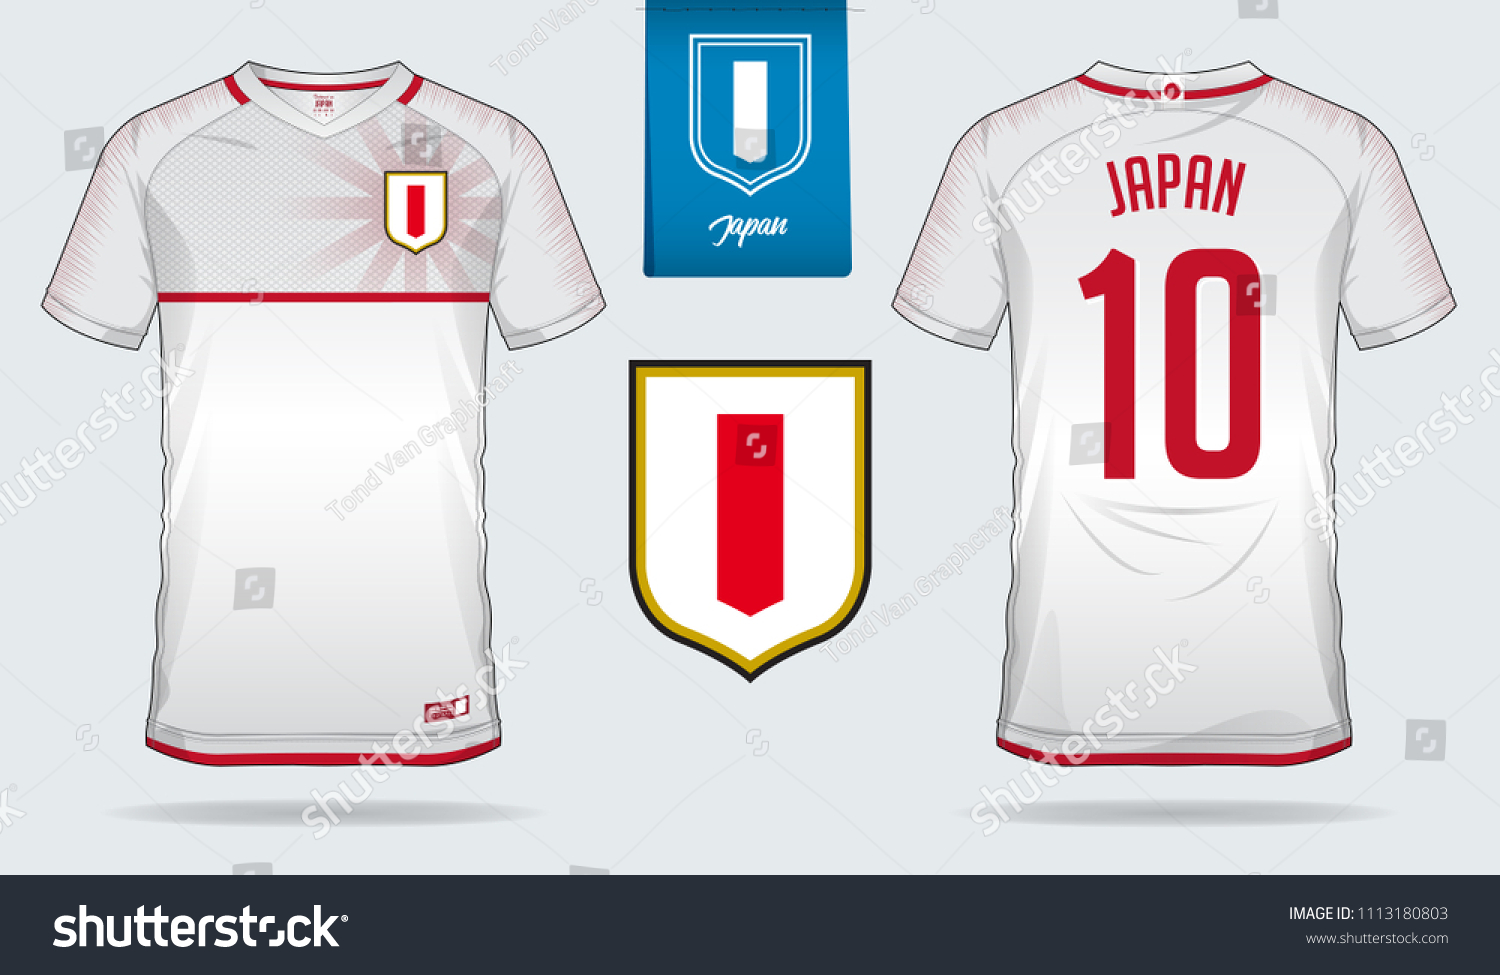 a476ef641 Soccer jersey or football kit template design for Japan national football  team. Front and back